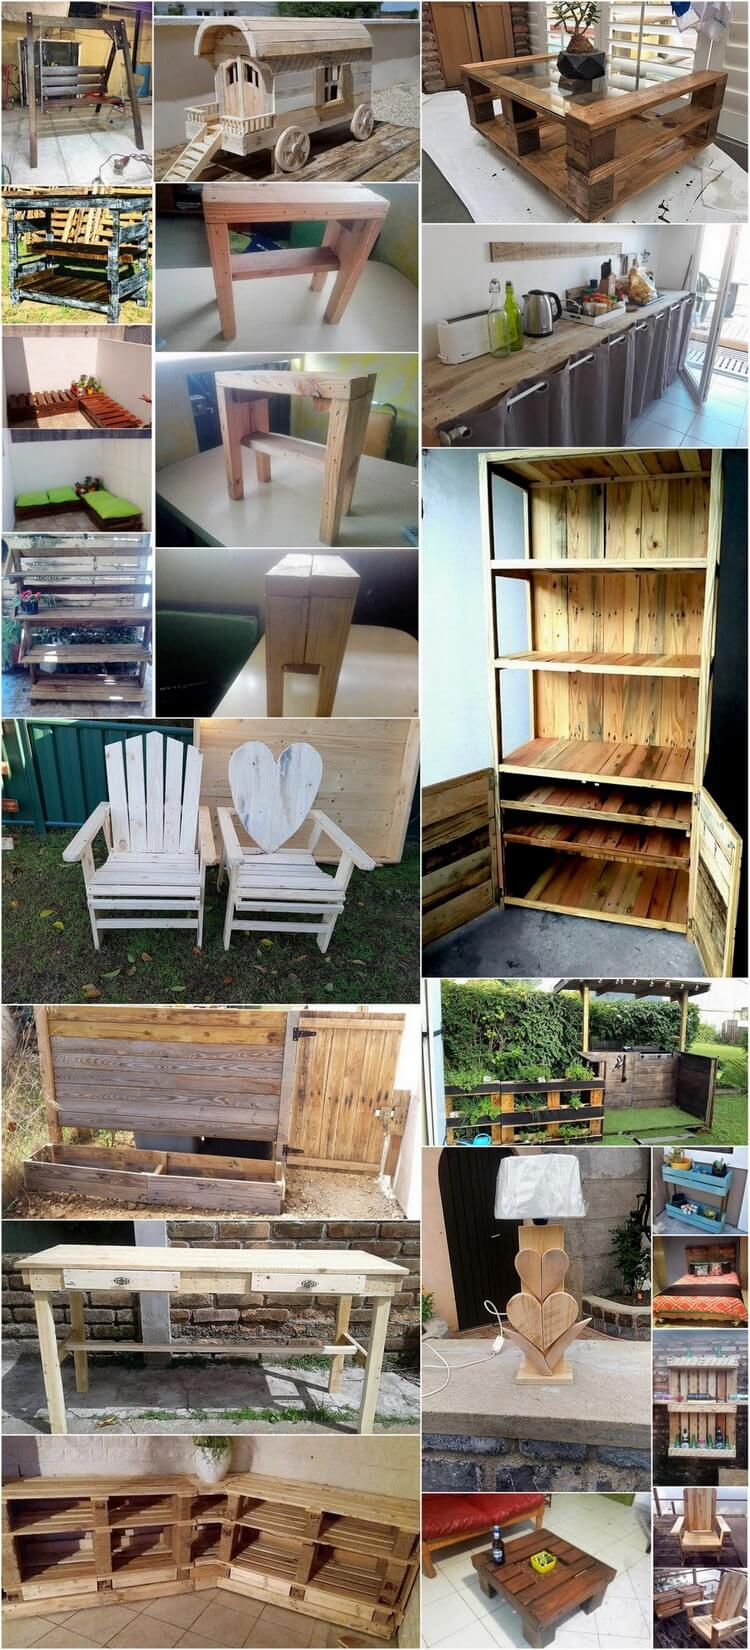 Amazing Ways to Transform Old Pallets into Unique Things